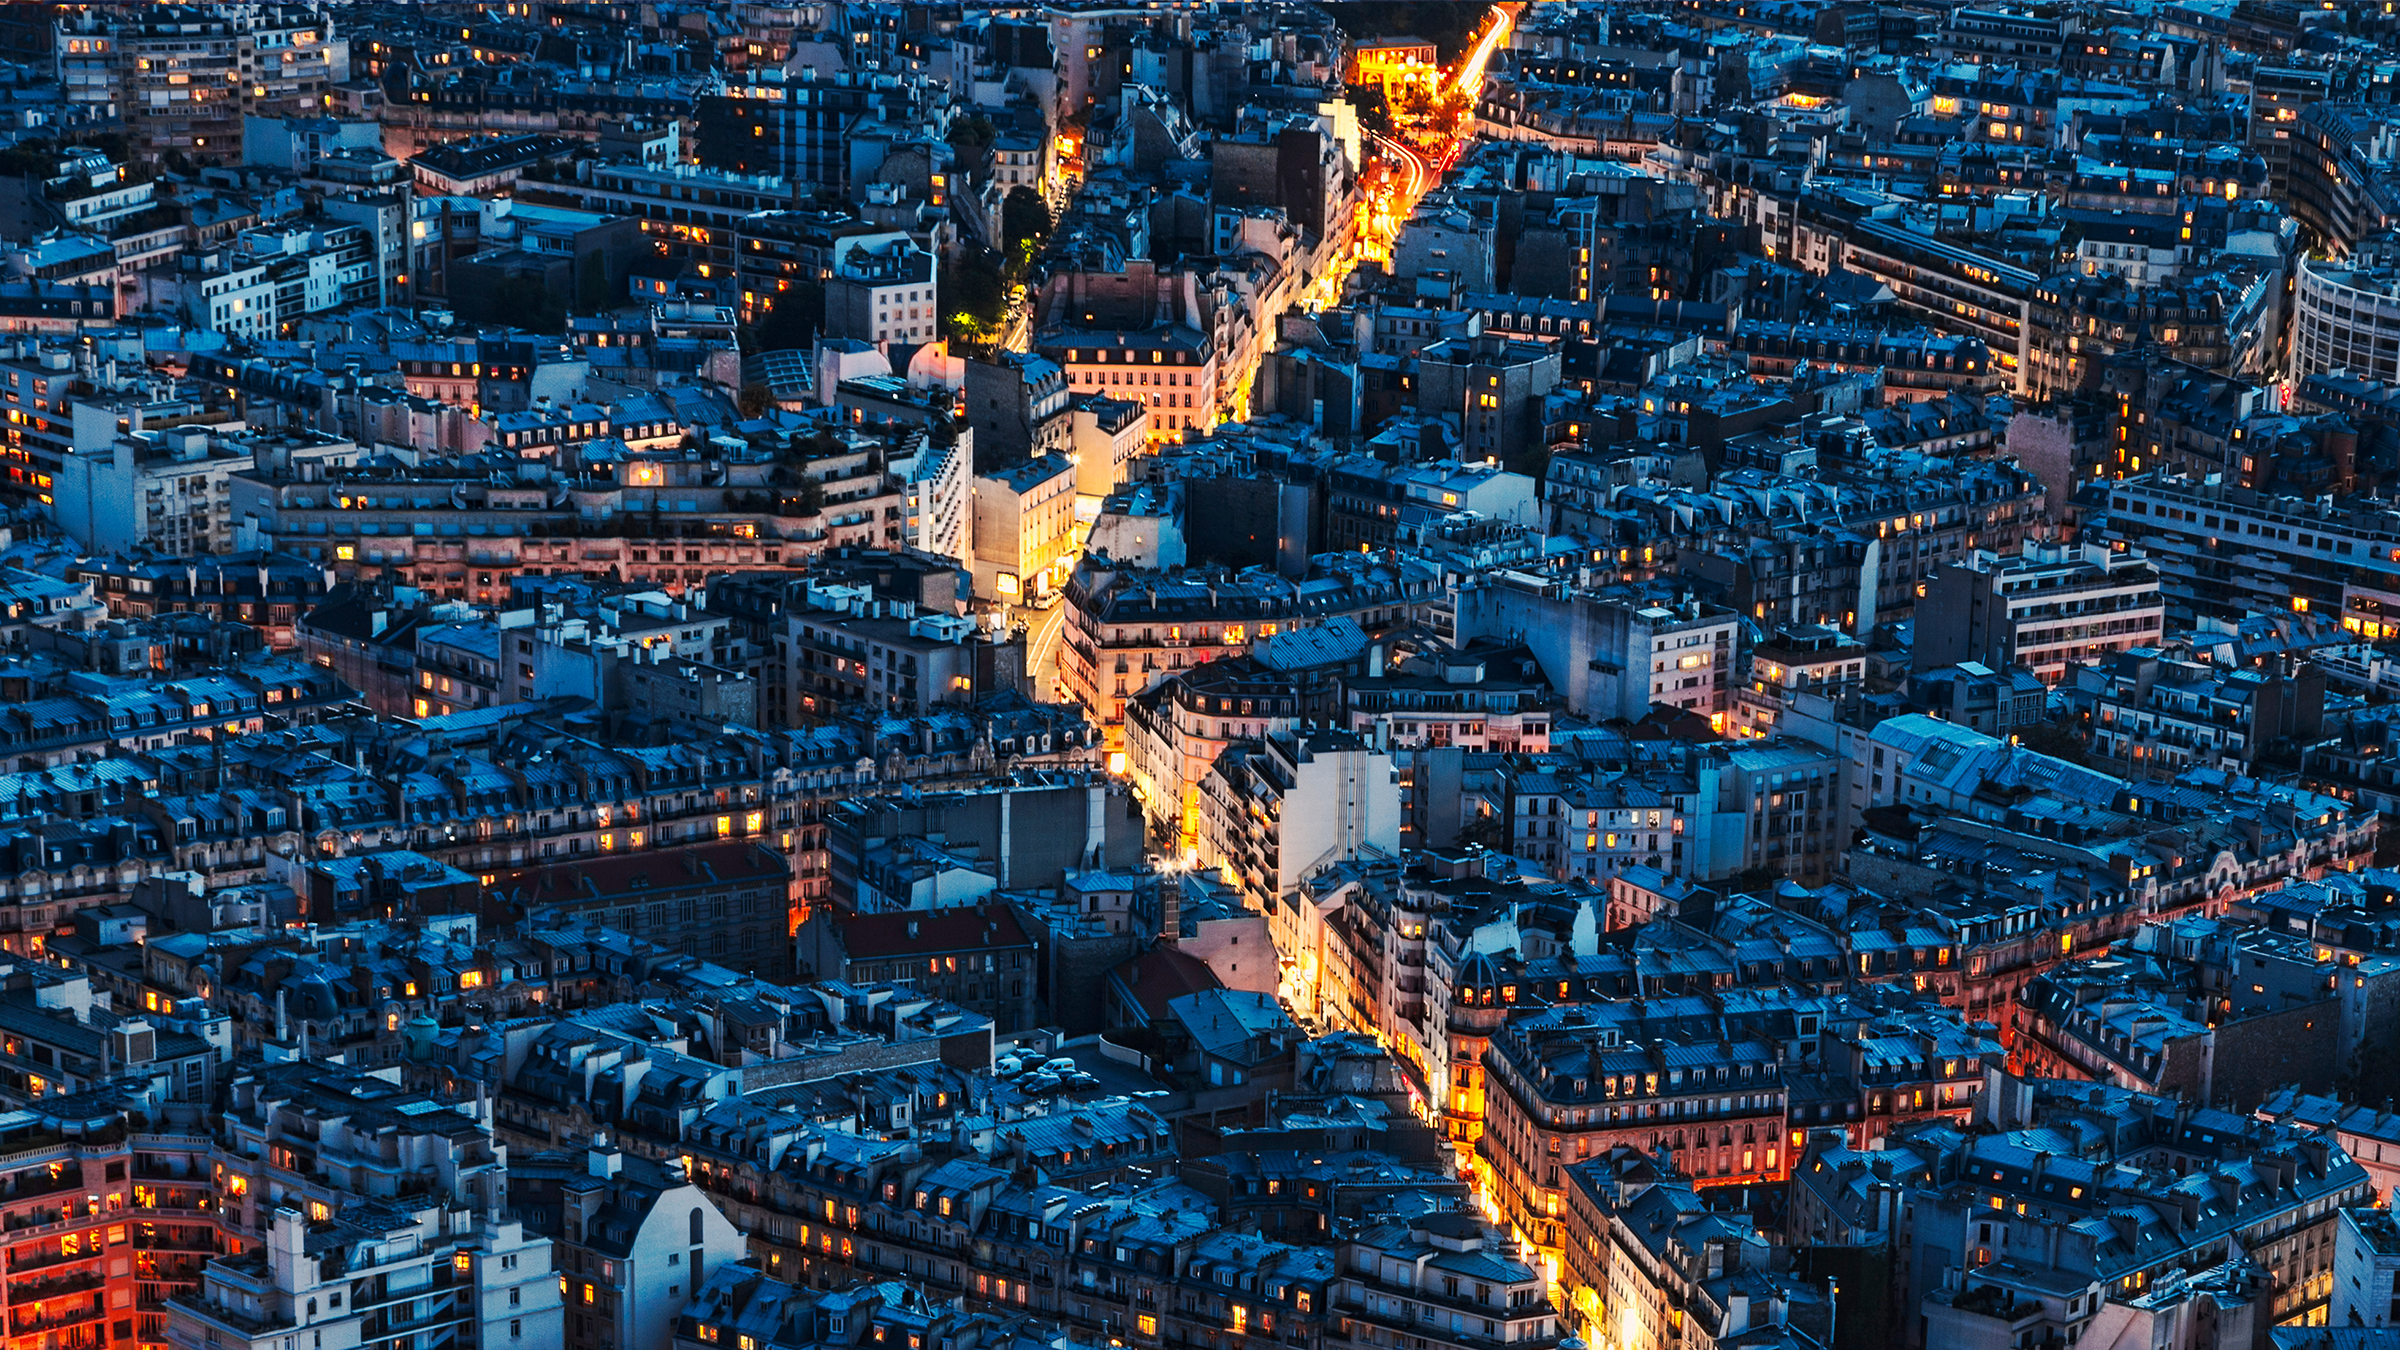 From Paris to 2030